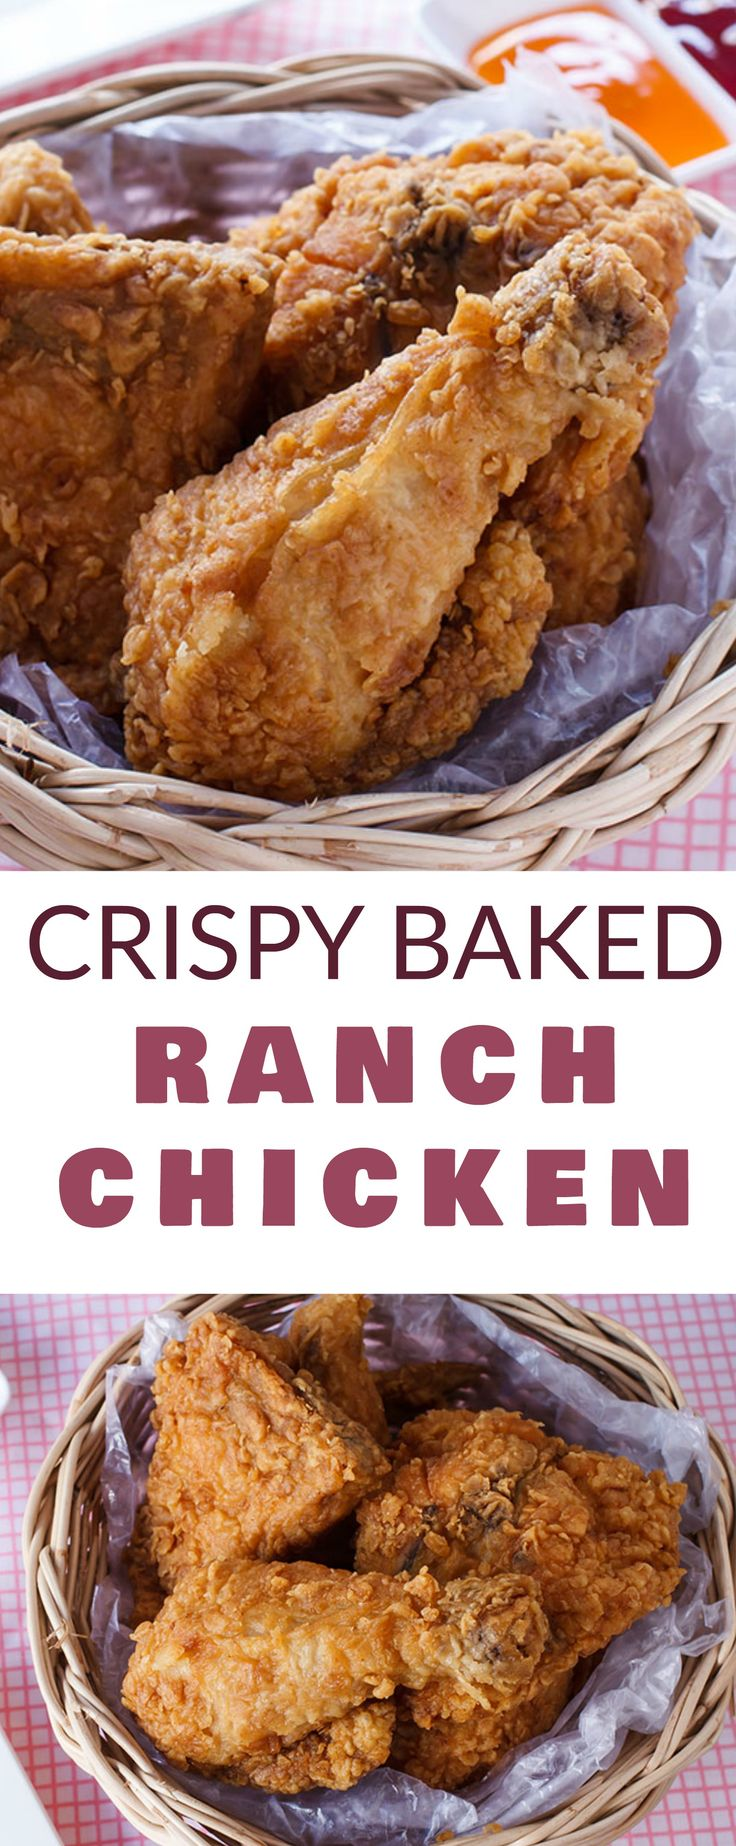 CRISPY chicken made with RANCH dip and baked in the oven!  This easy Crispy Baked Ranch Chicken recipe only needs a few ingredients and makes a healthy dinner!  Serve with a salad or some fresh vegetables on the side!